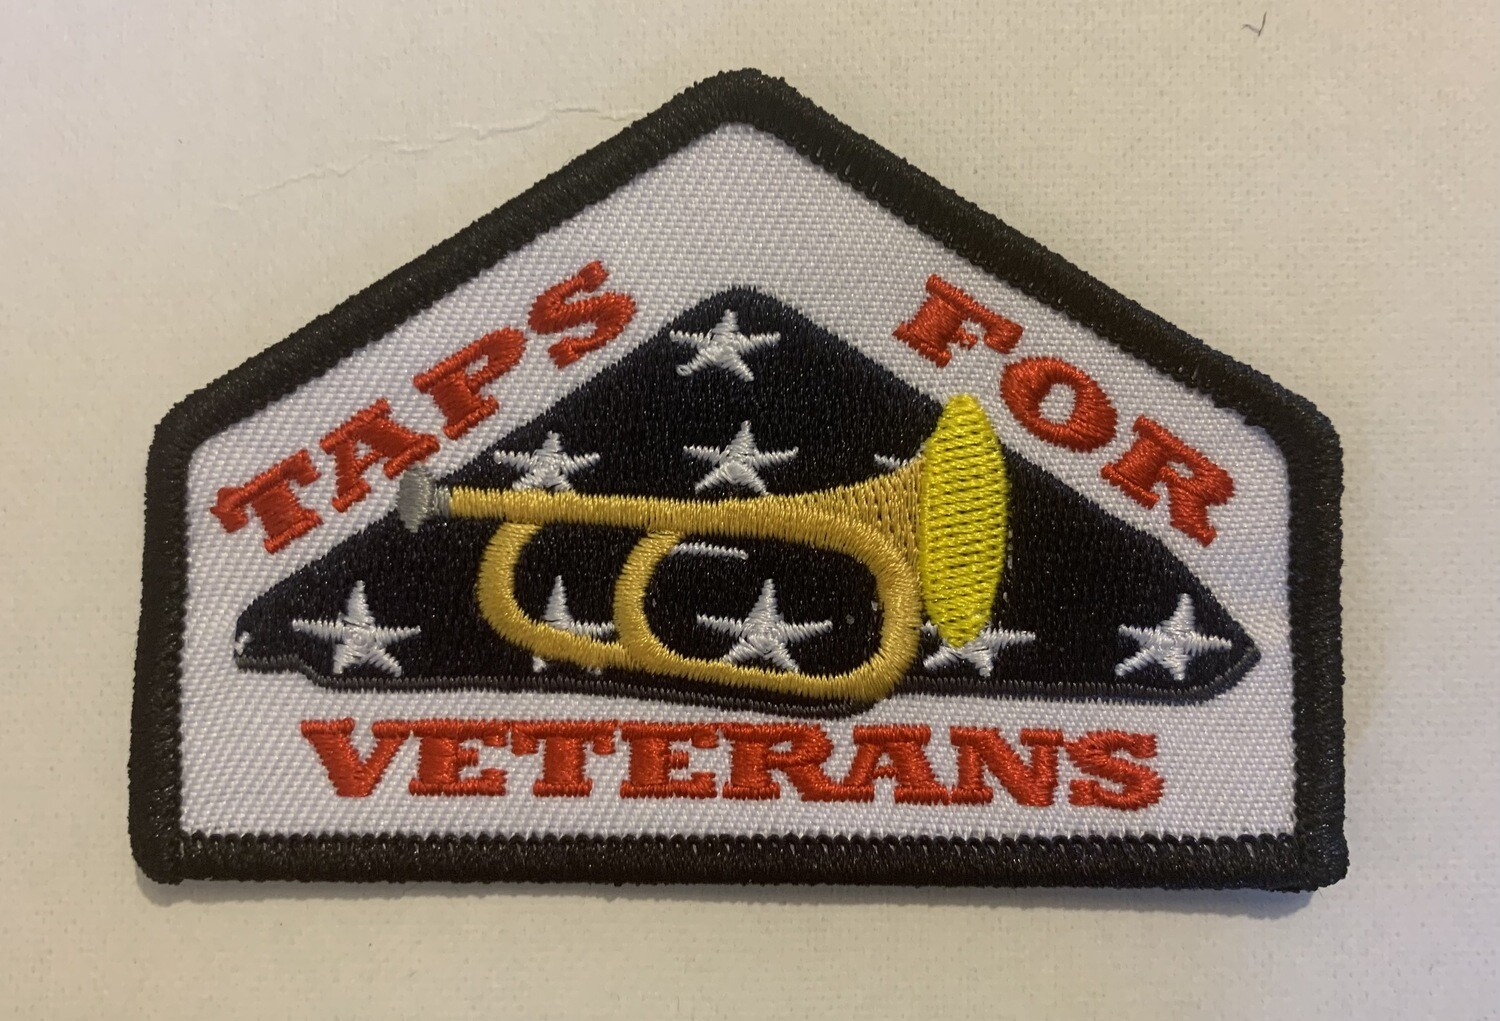 Patch - Taps For Veterans